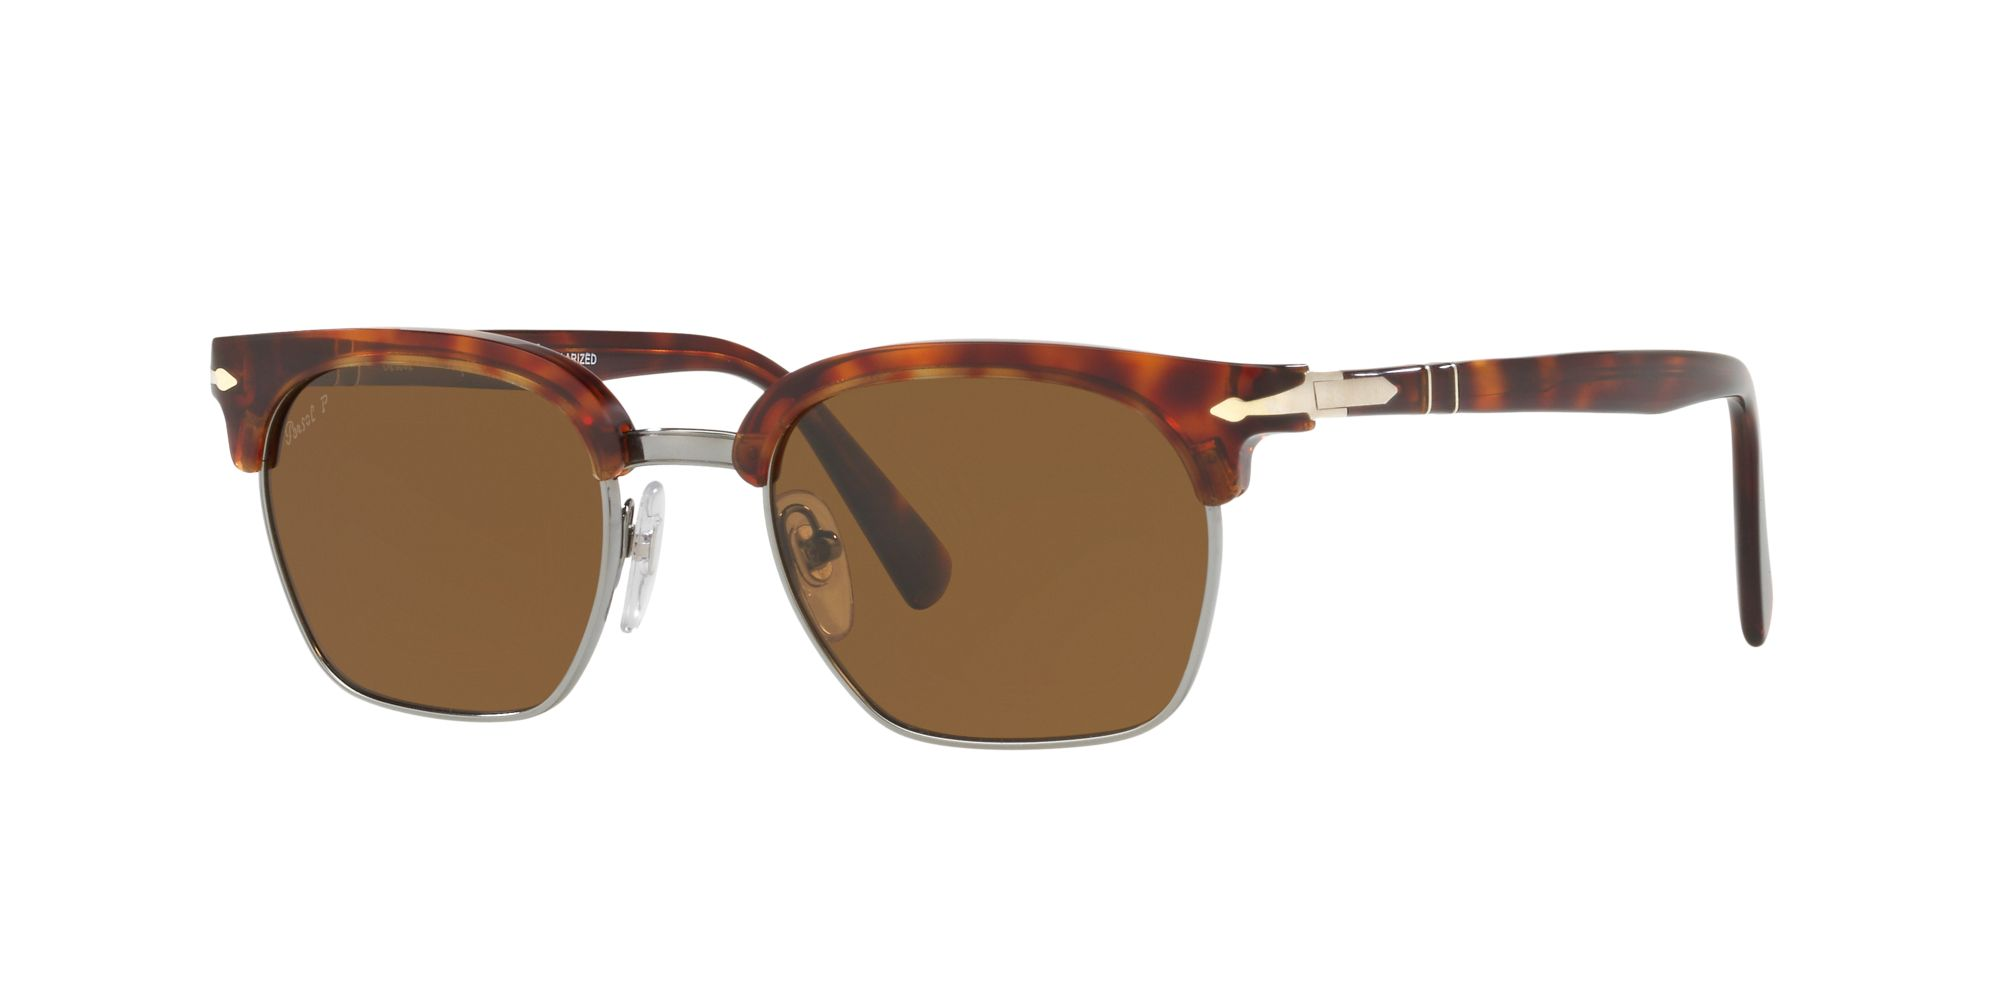 f517a2d331c Tailoring Edition PO3199S - Havana - Polarized Brown - Acetate ...